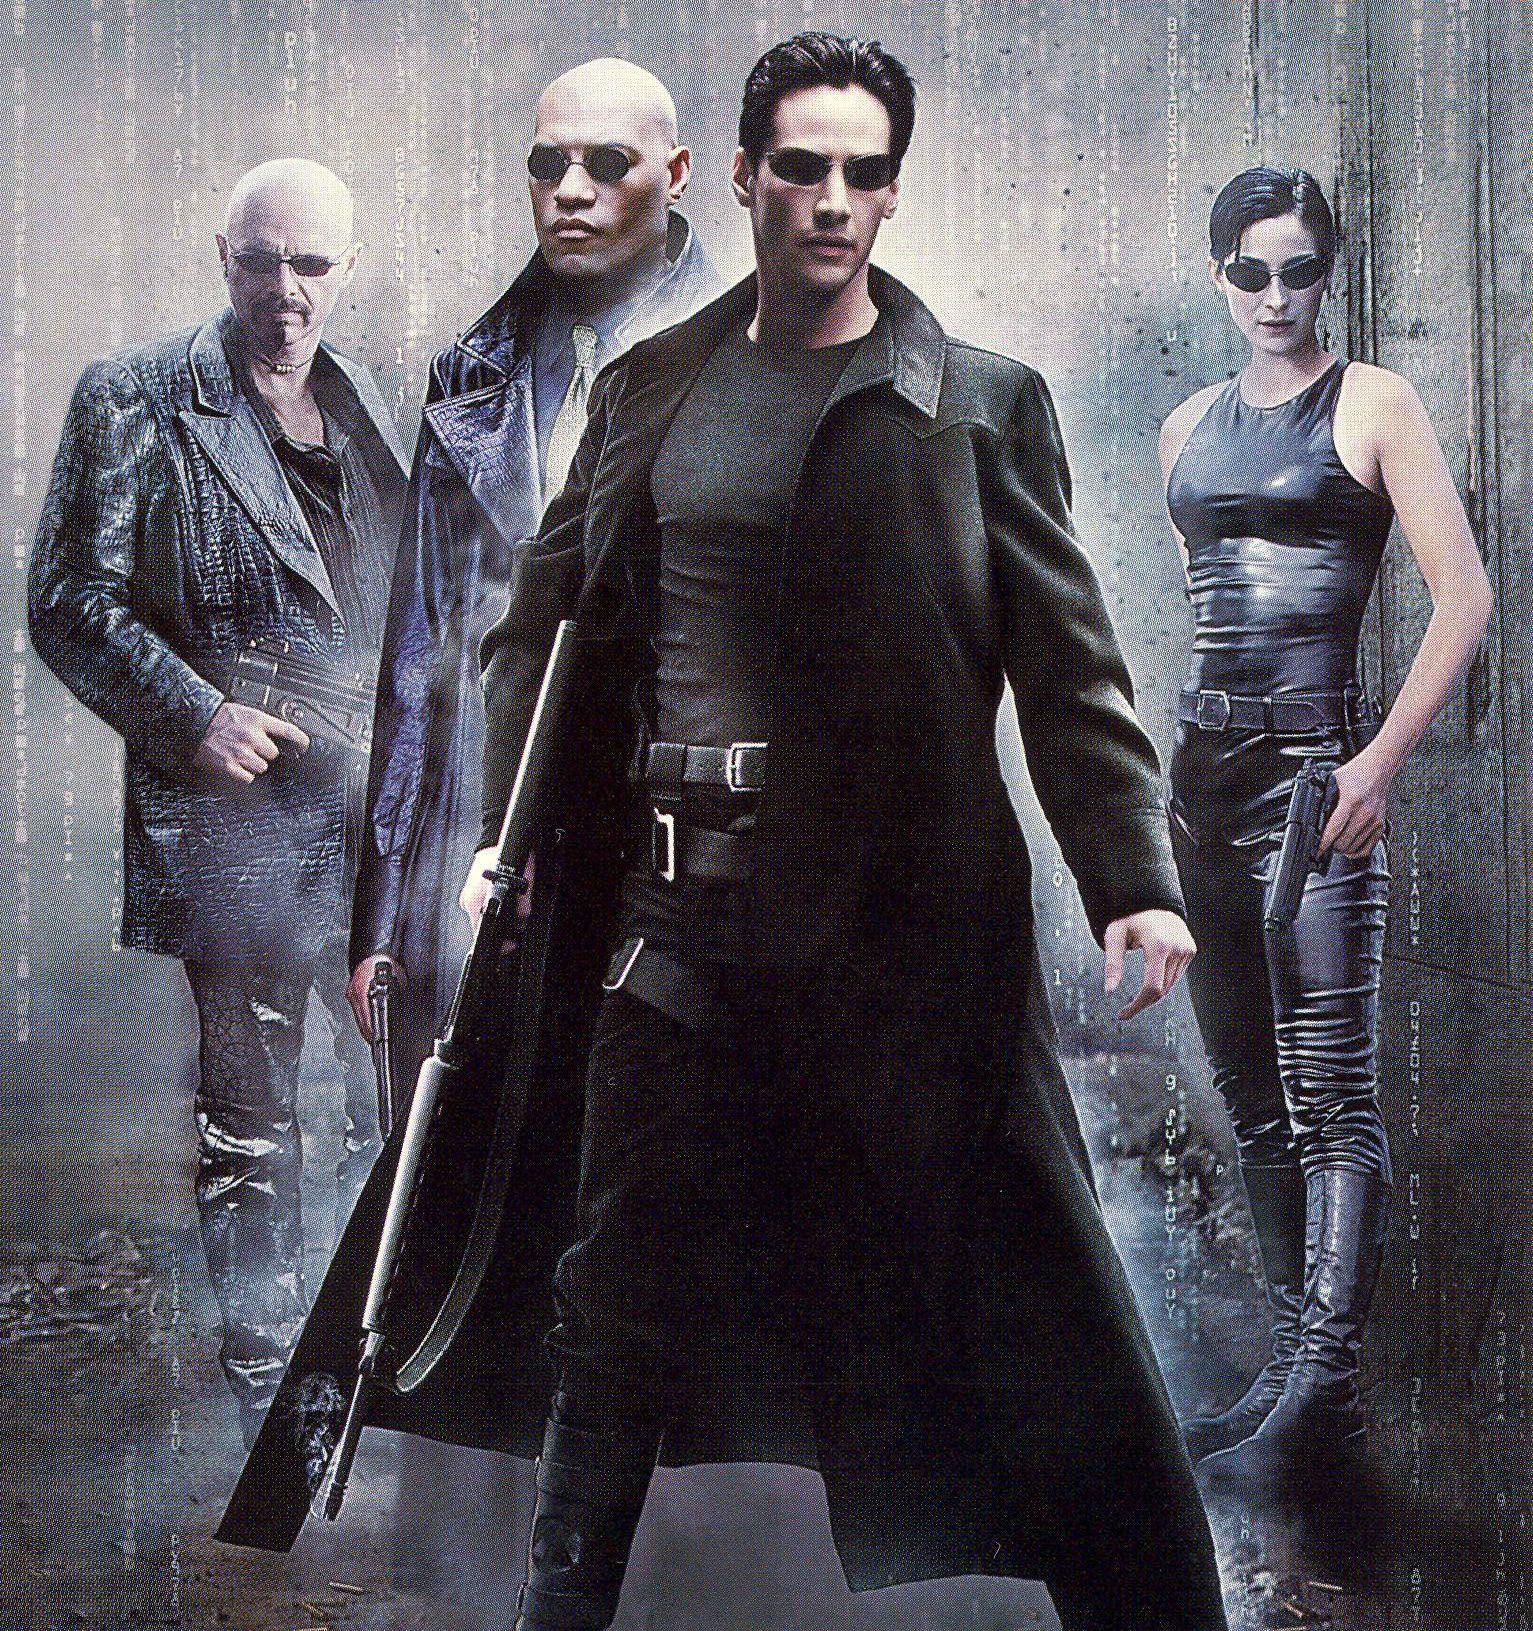 The Matrix Films Are About Being Transgender, The Trilogy's Co-Director Says